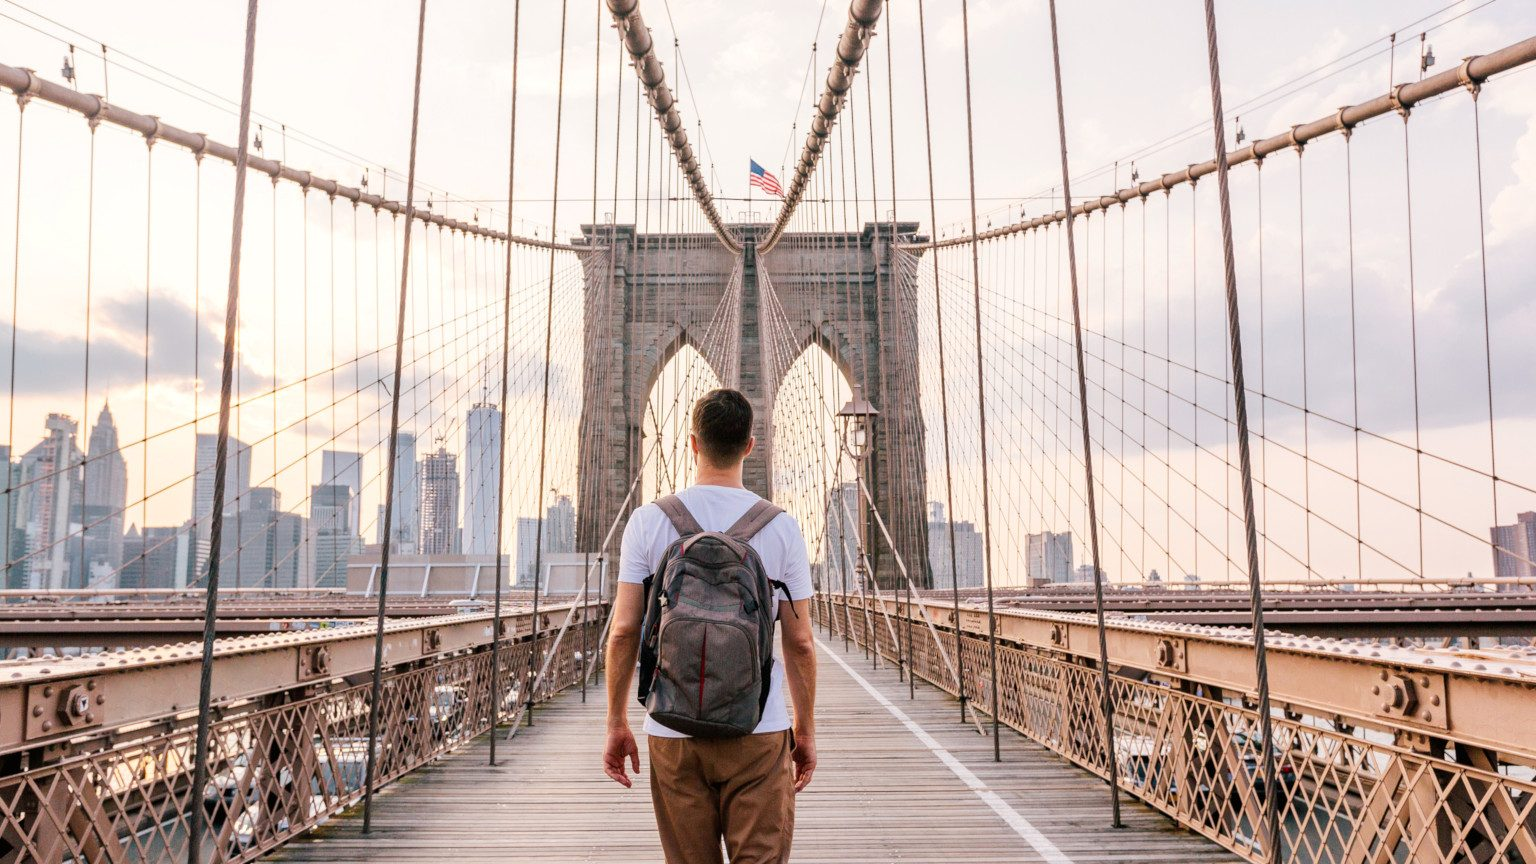 A young man with a backpack walking the Brooklyn bridge